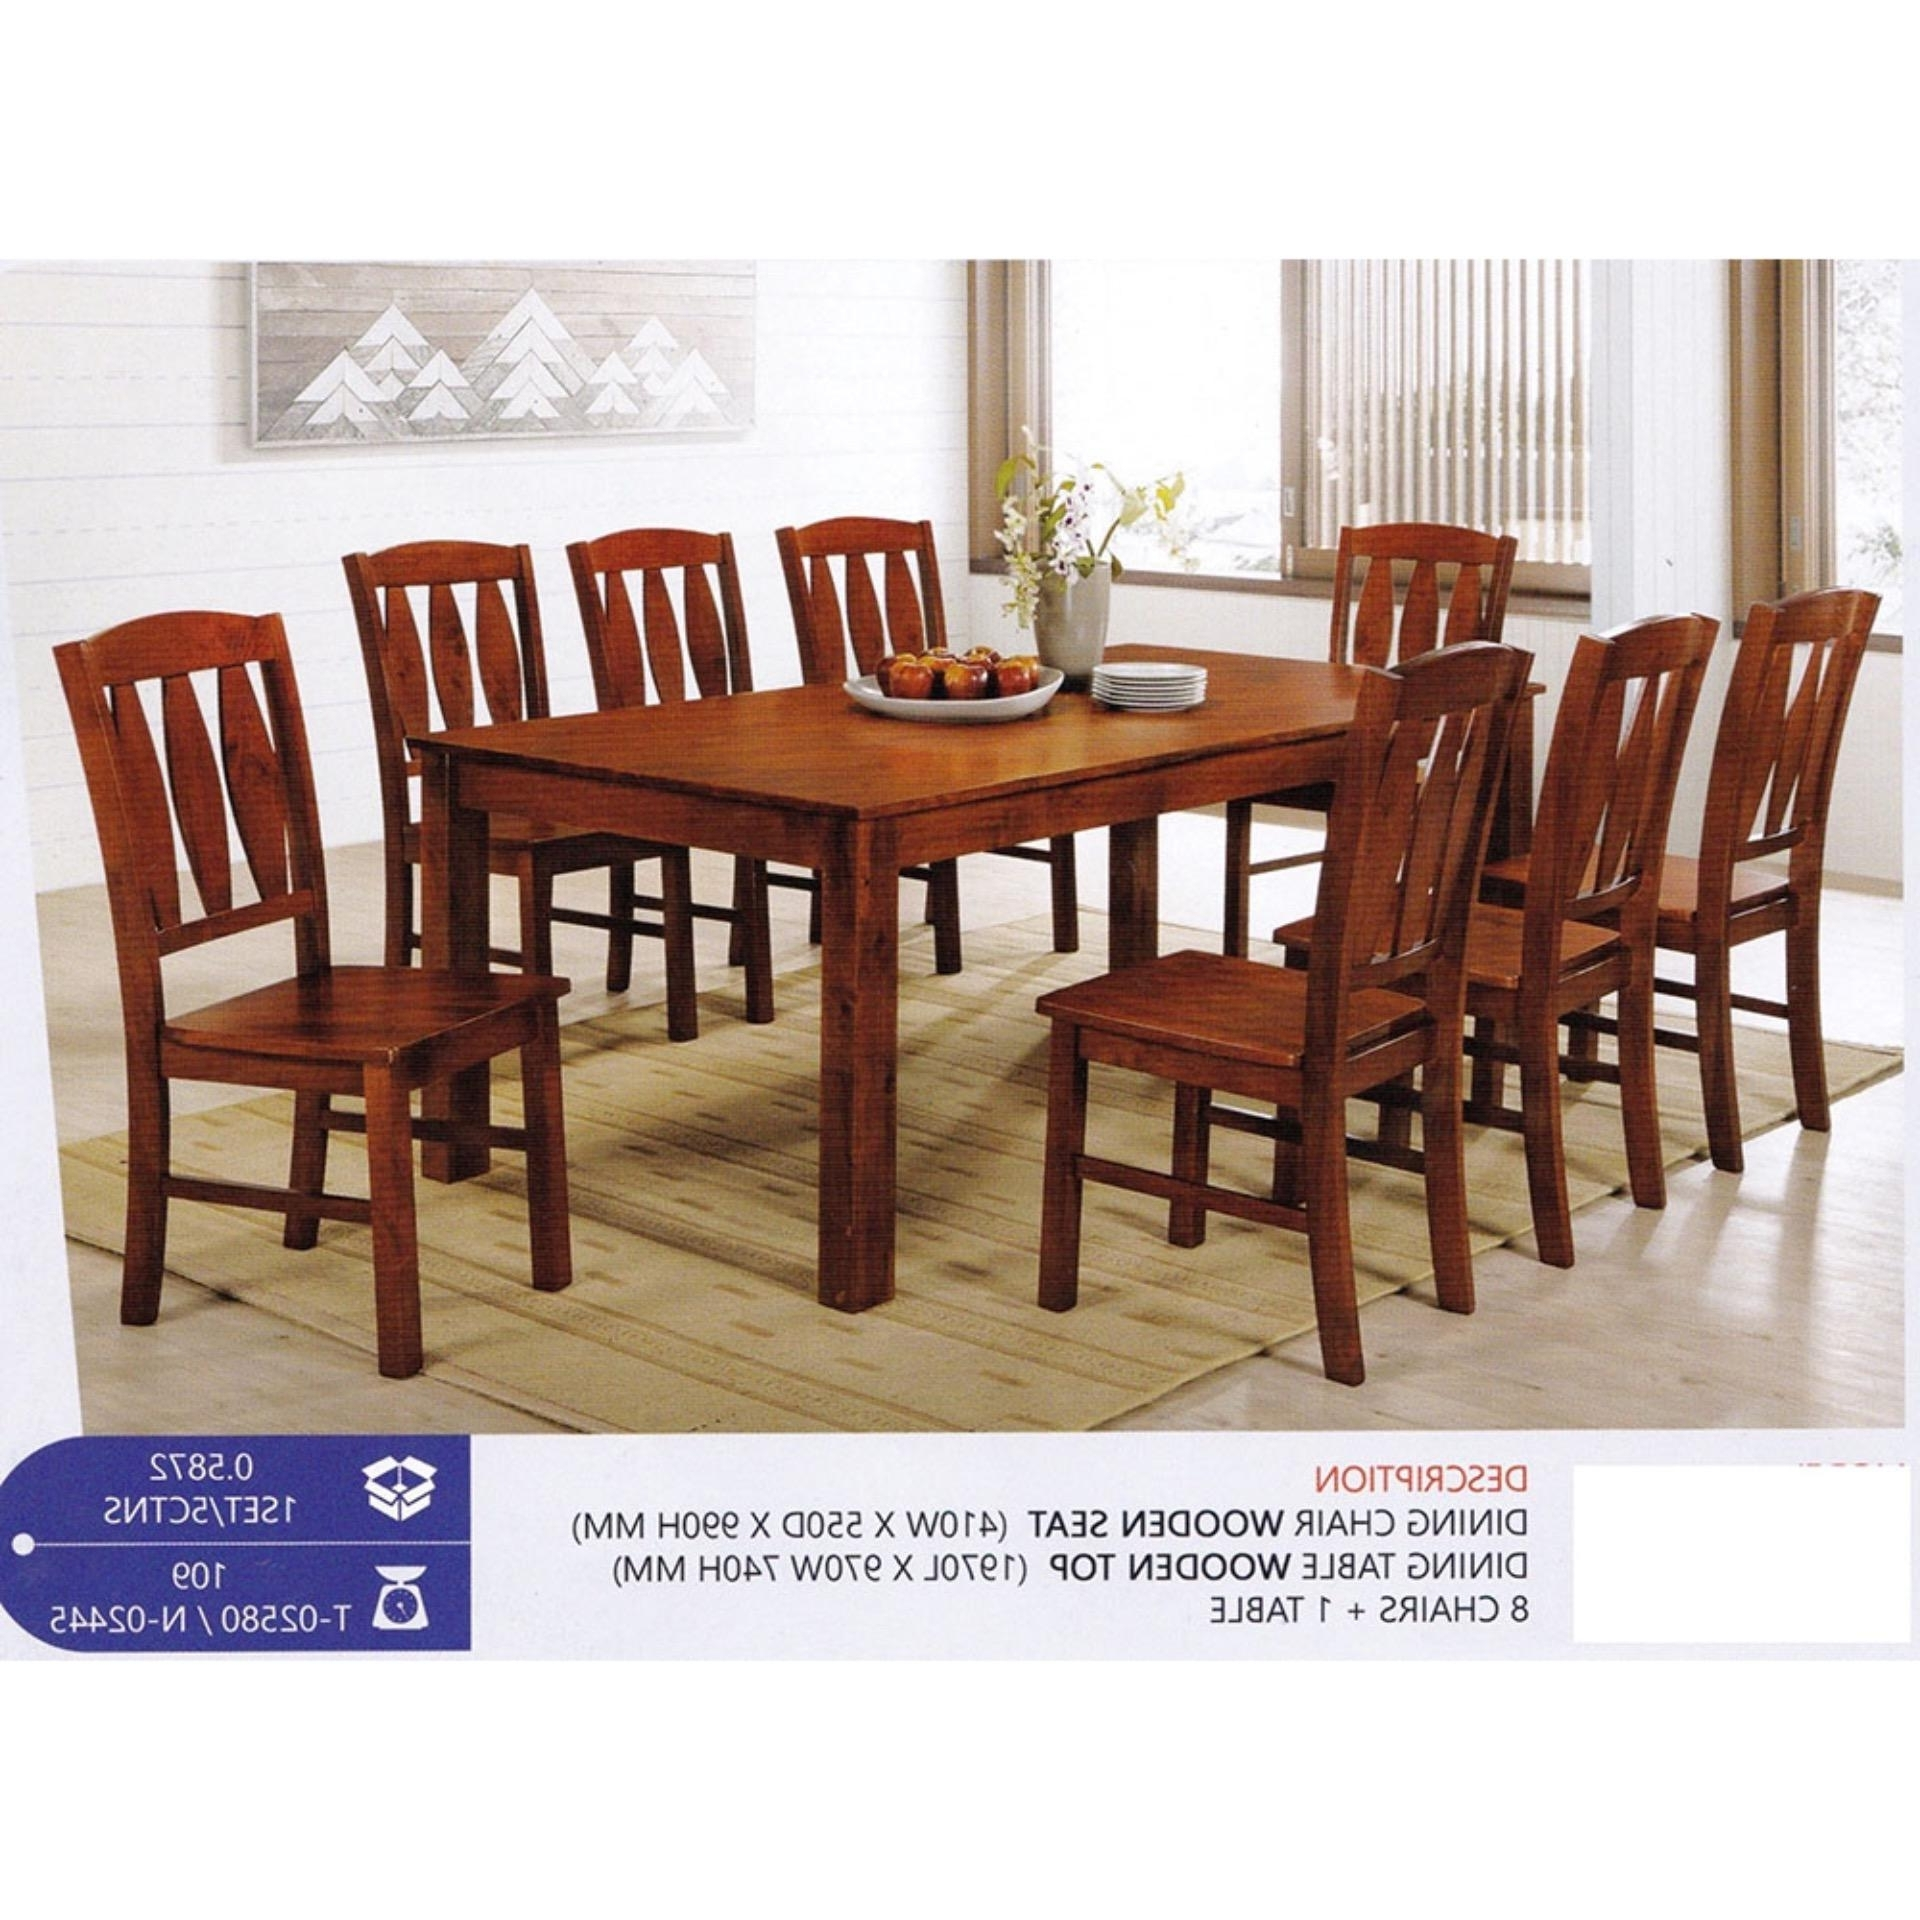 Well Known Fully Solid Wood 1+8 Dining Table Ch (End 5/2/2021 12:00 Am) Intended For Colourful Dining Tables And Chairs (View 23 of 25)